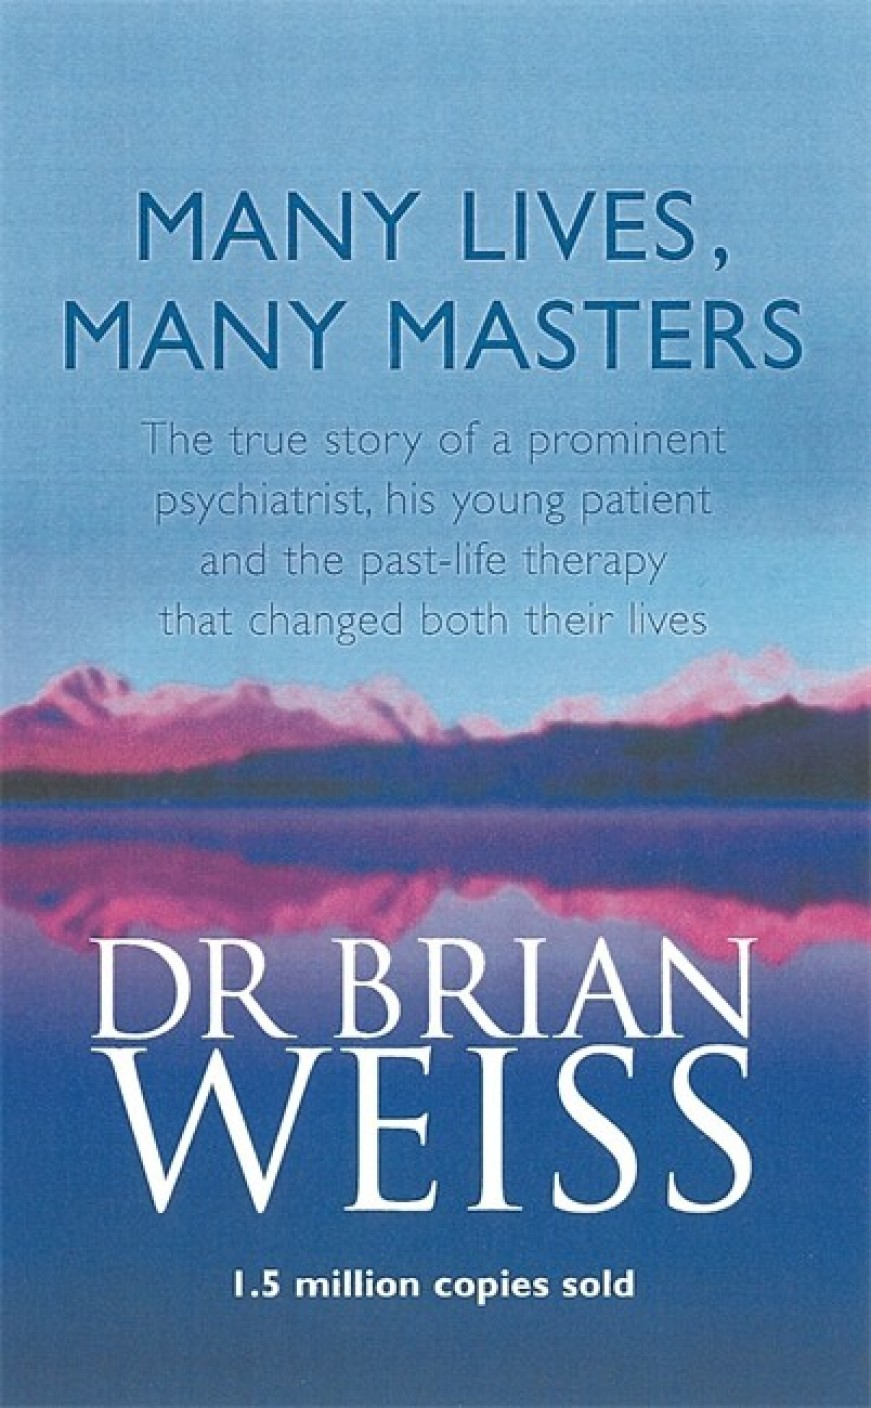 an analysis of many lives many masters Many lives, many masters has 28,359 ratings and 2,248 reviews jon said: this is one of the worst books i've ever read - parading as a scientific analysi.